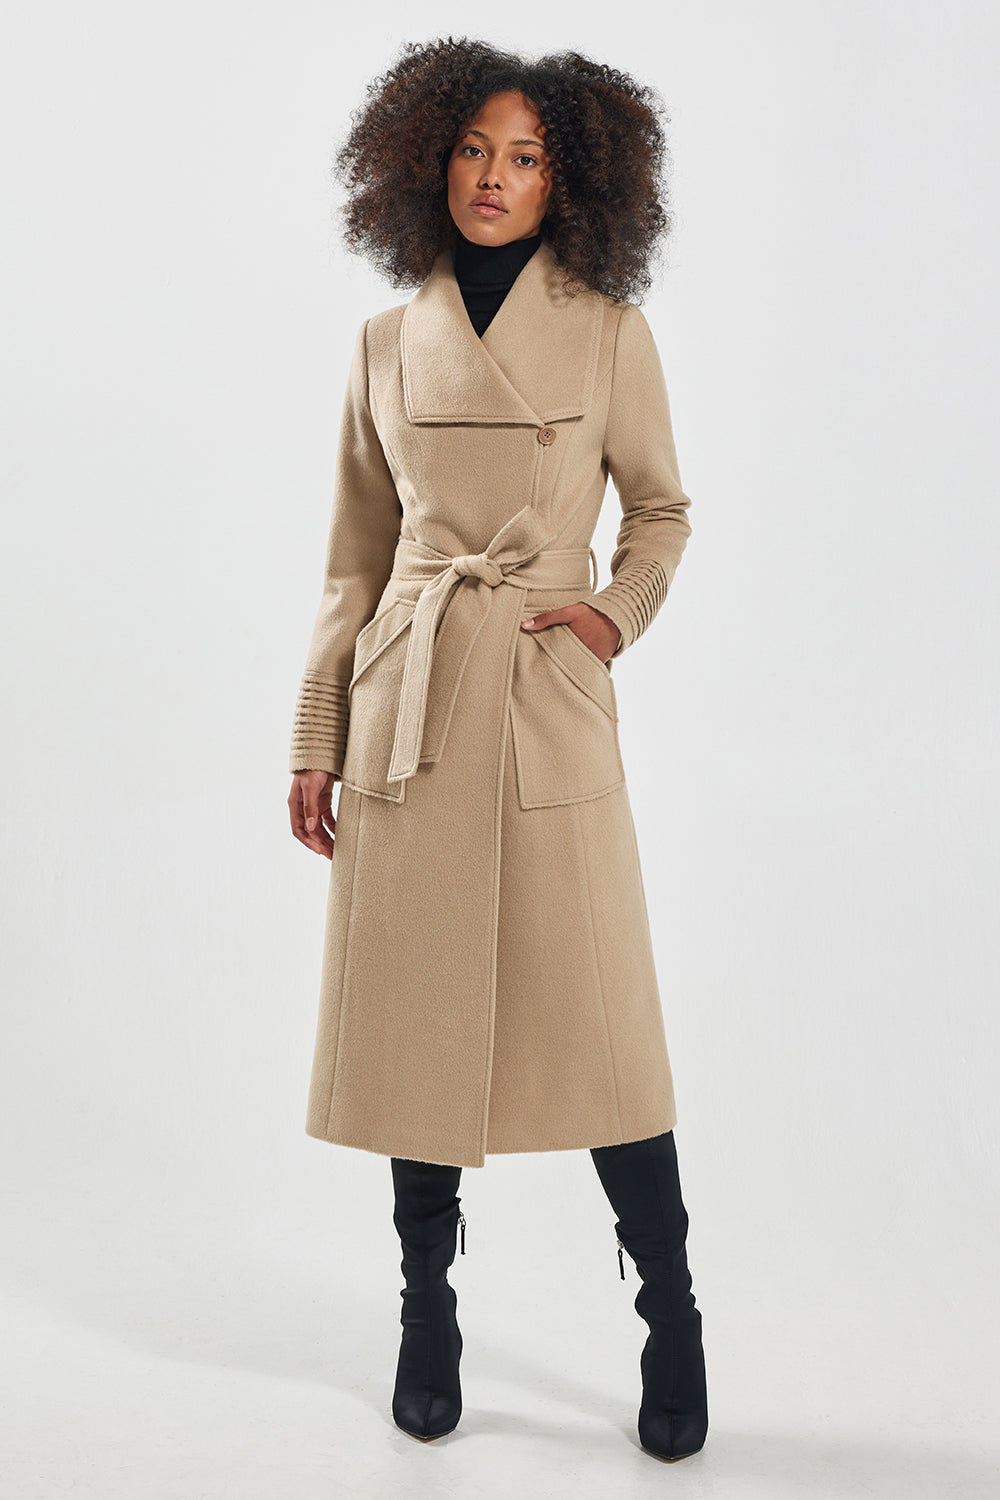 Sentaler Long Wide Collar Wrap Coat featured in Baby Alpaca and available in Camel. Seen from front.